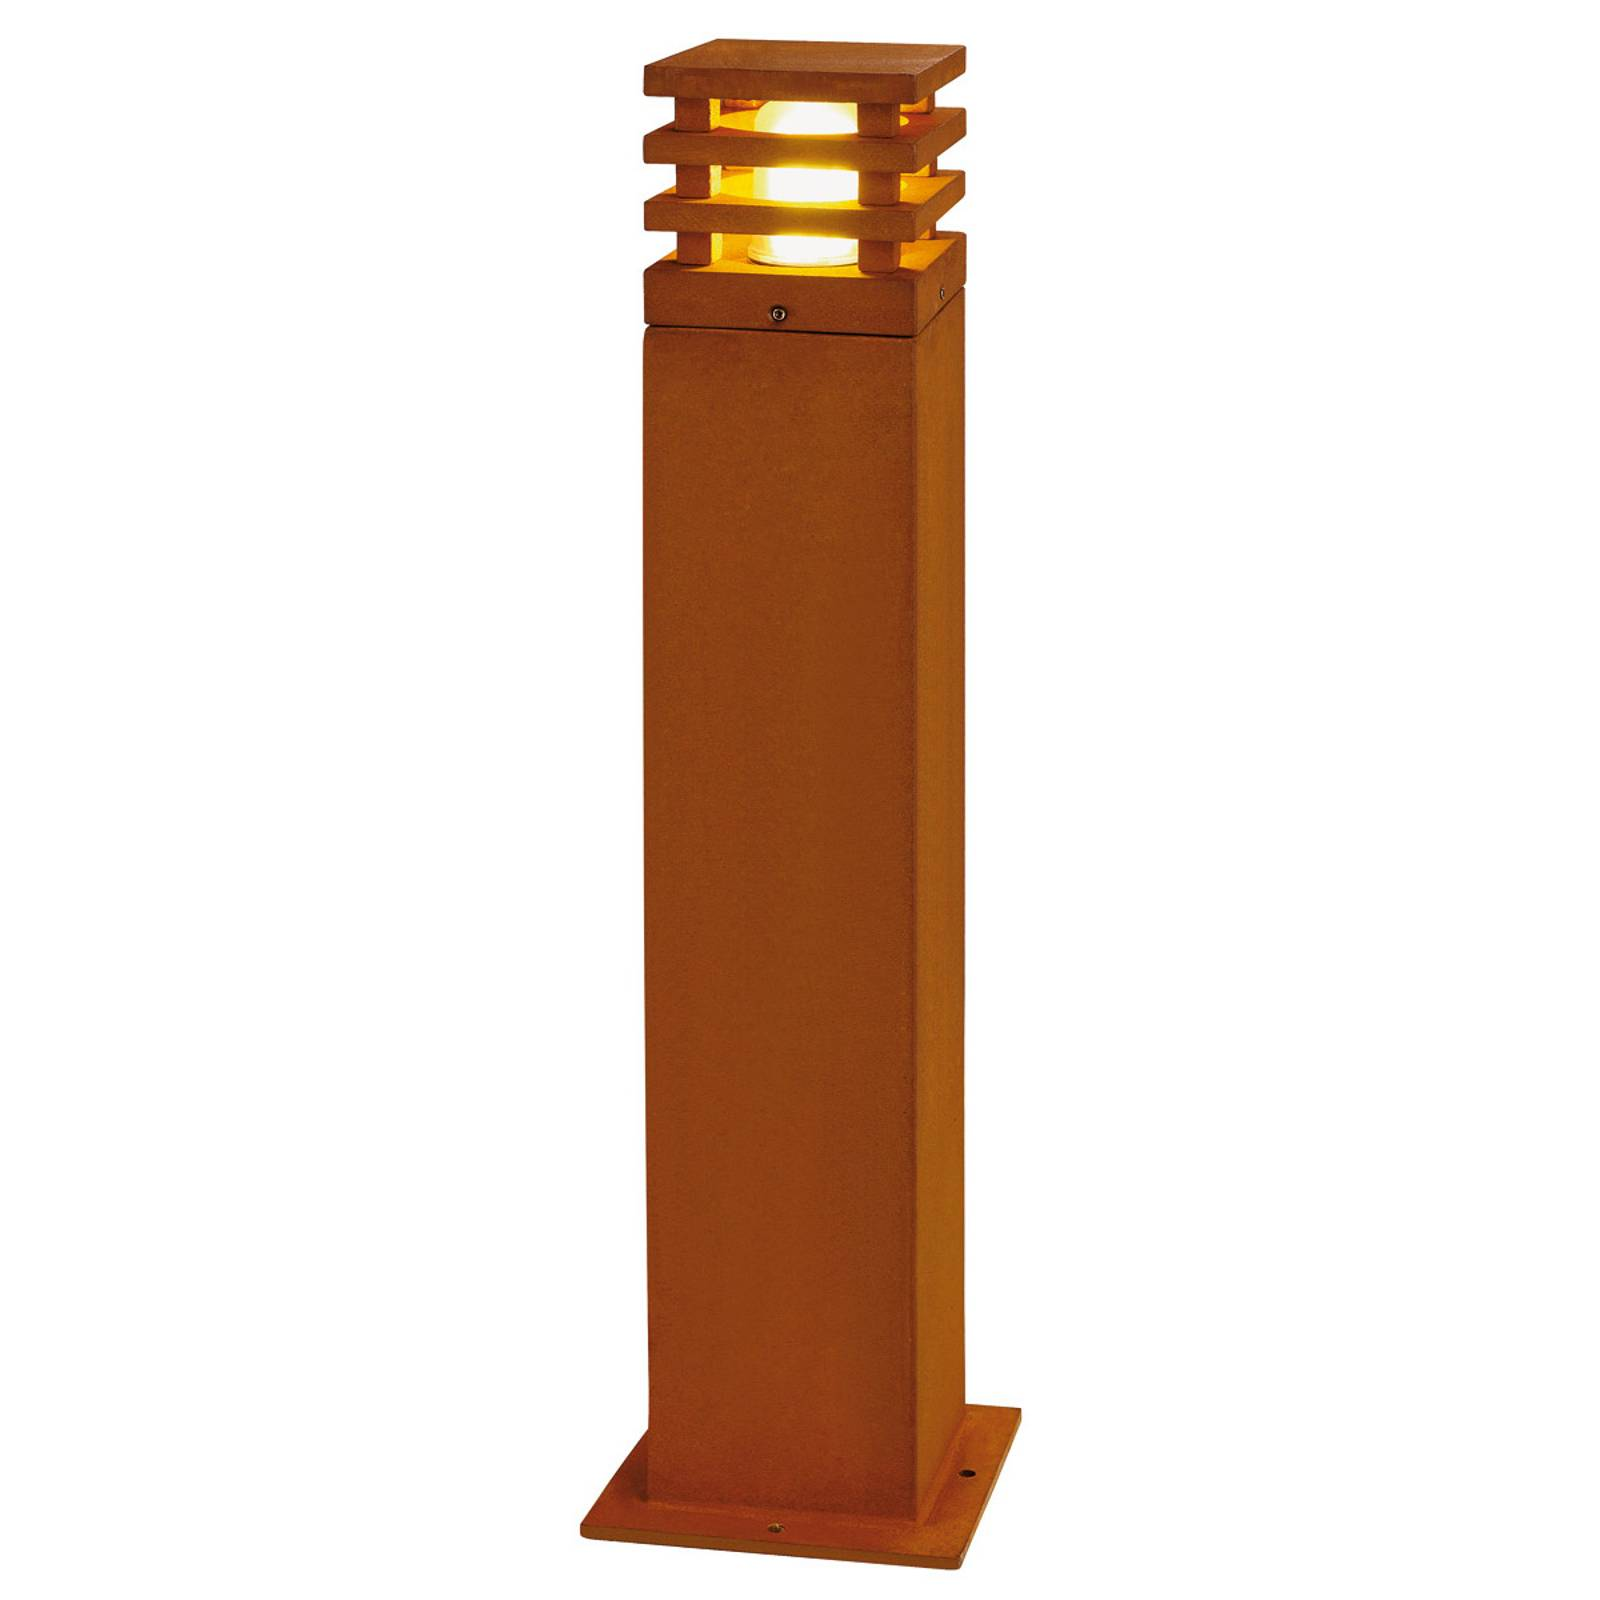 Country-style Rusty LED path light, square from SLV